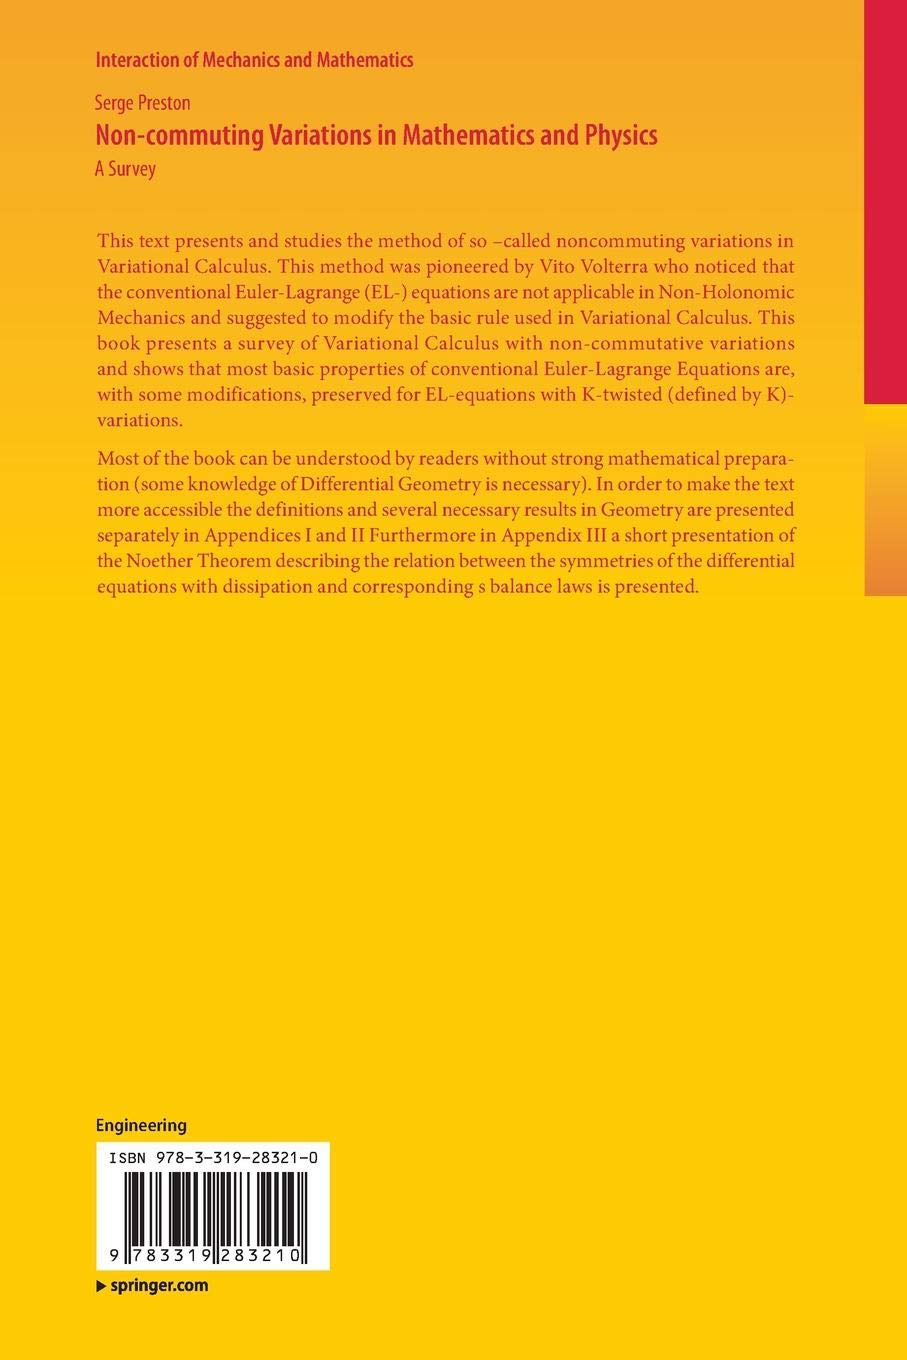 Non-commuting Variations in Mathematics and Physics: A Survey